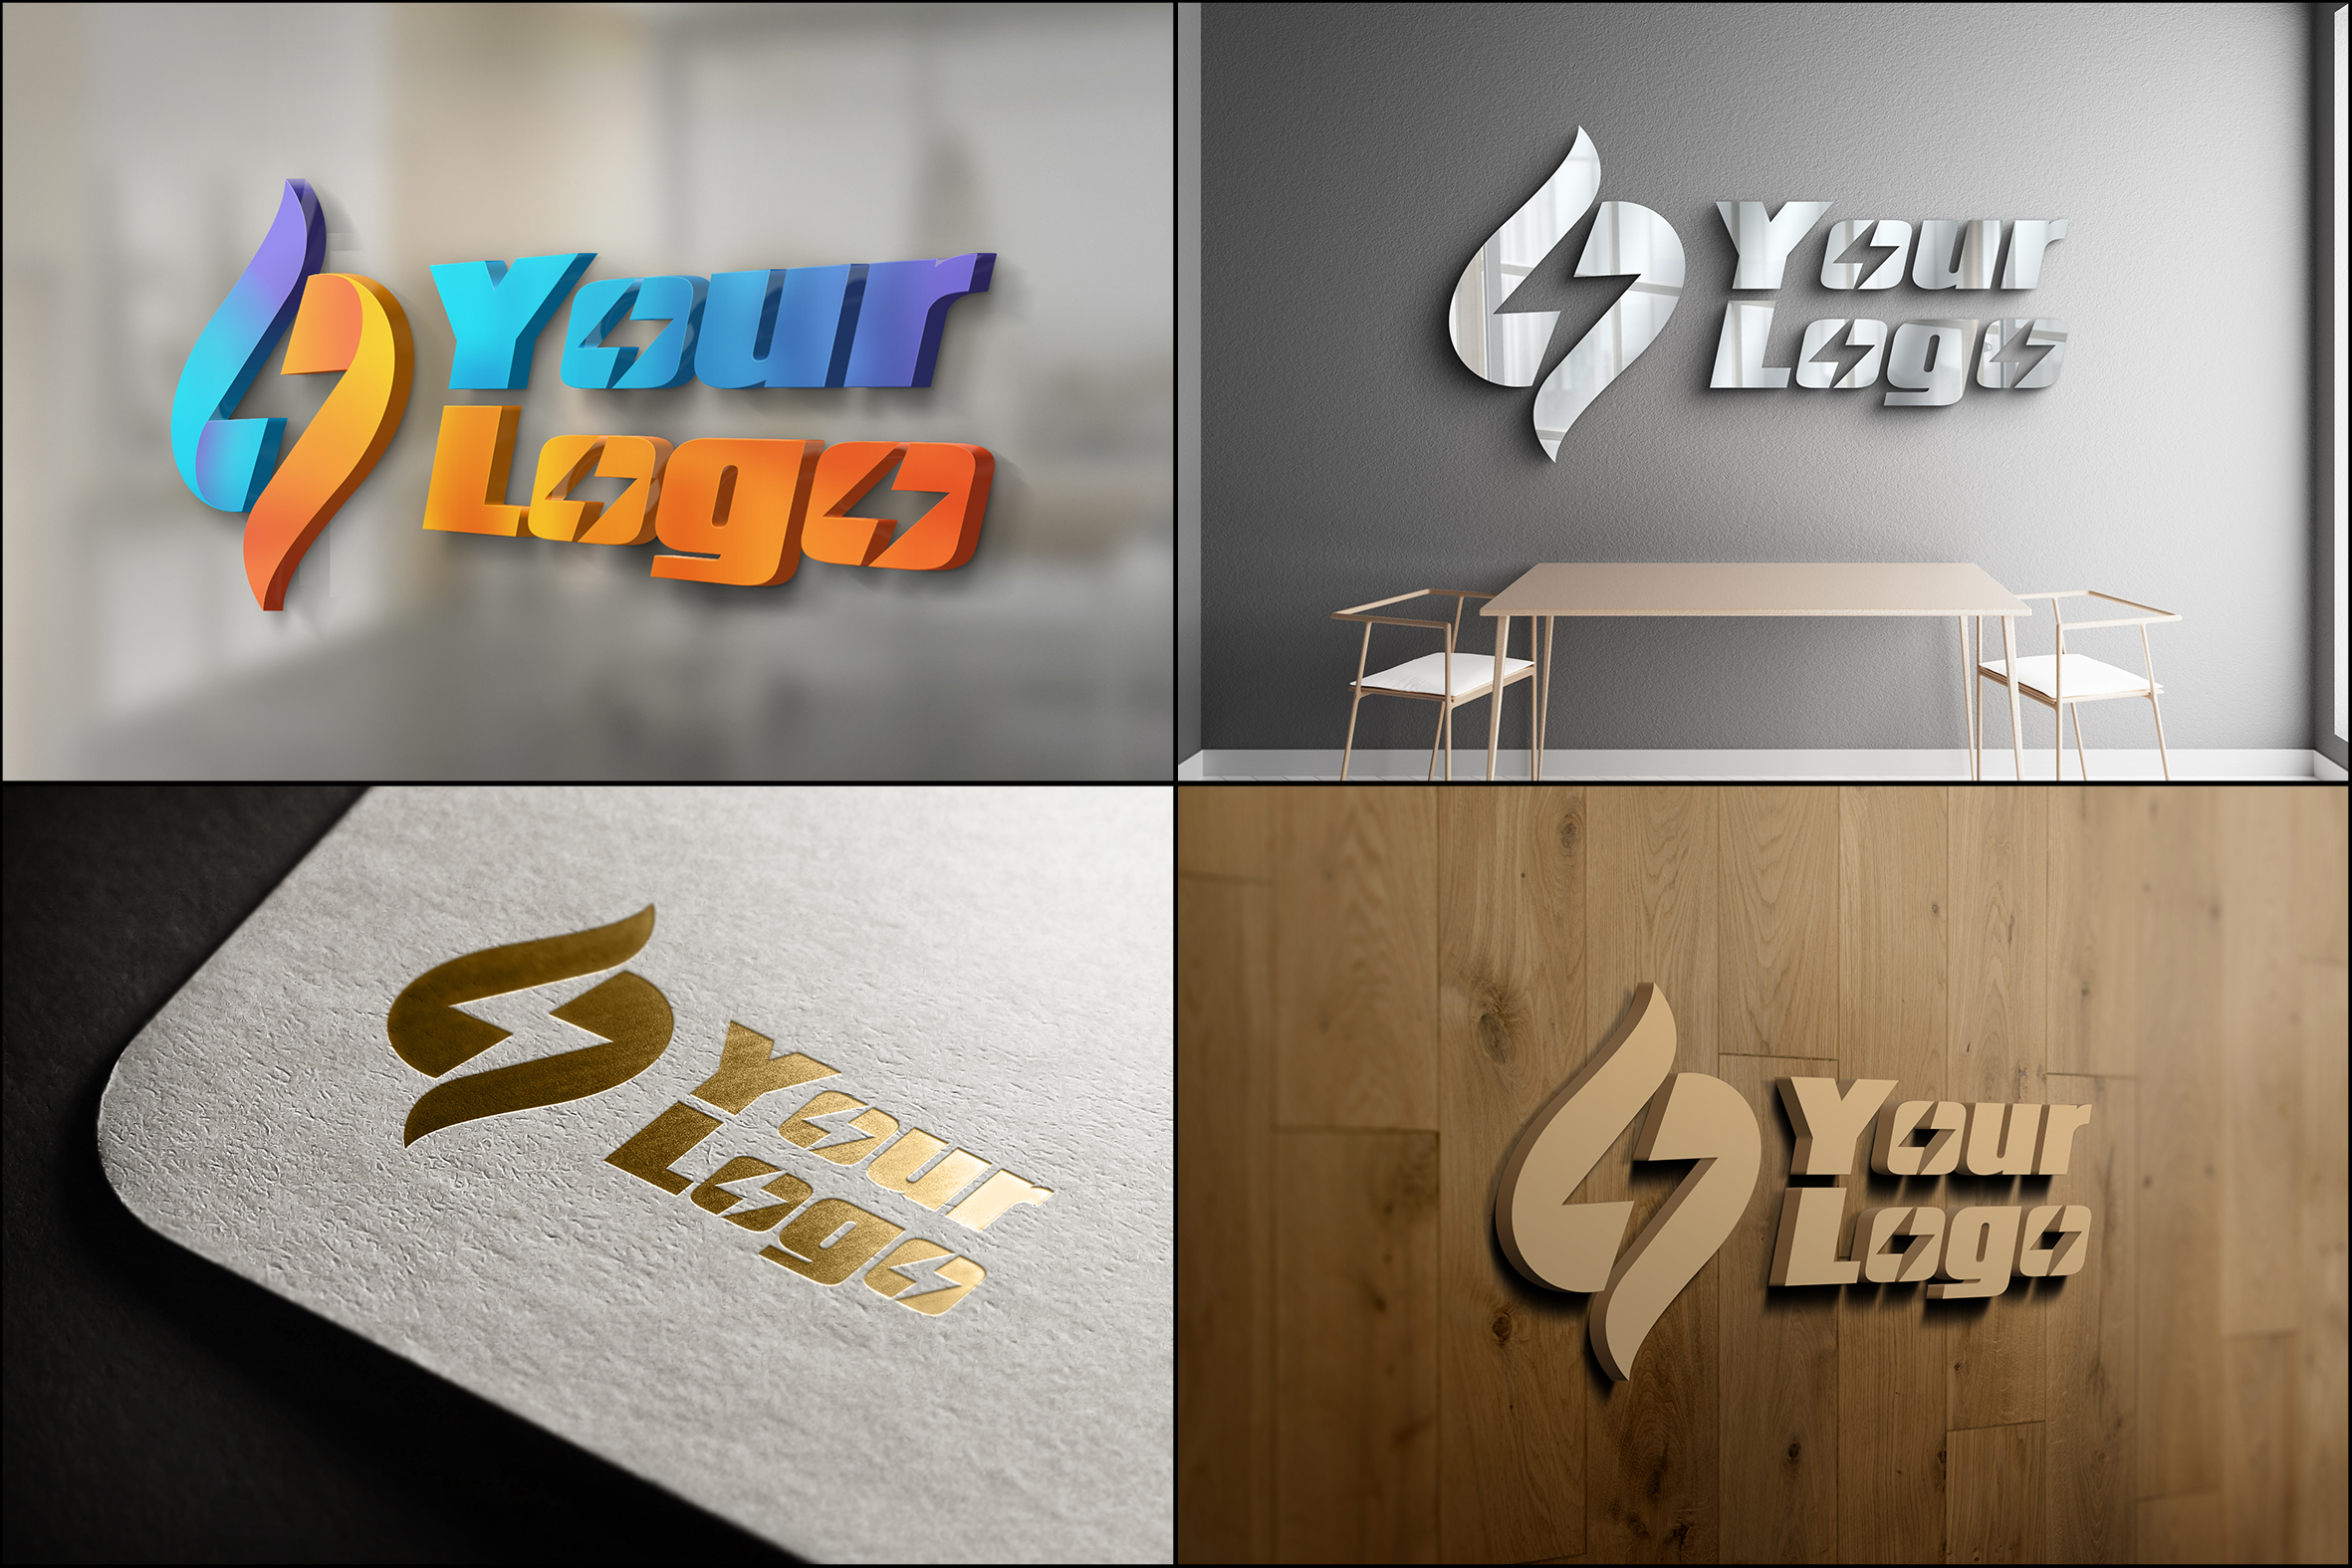 I will create 12 mockup 3d your logo on a lot material in 24h